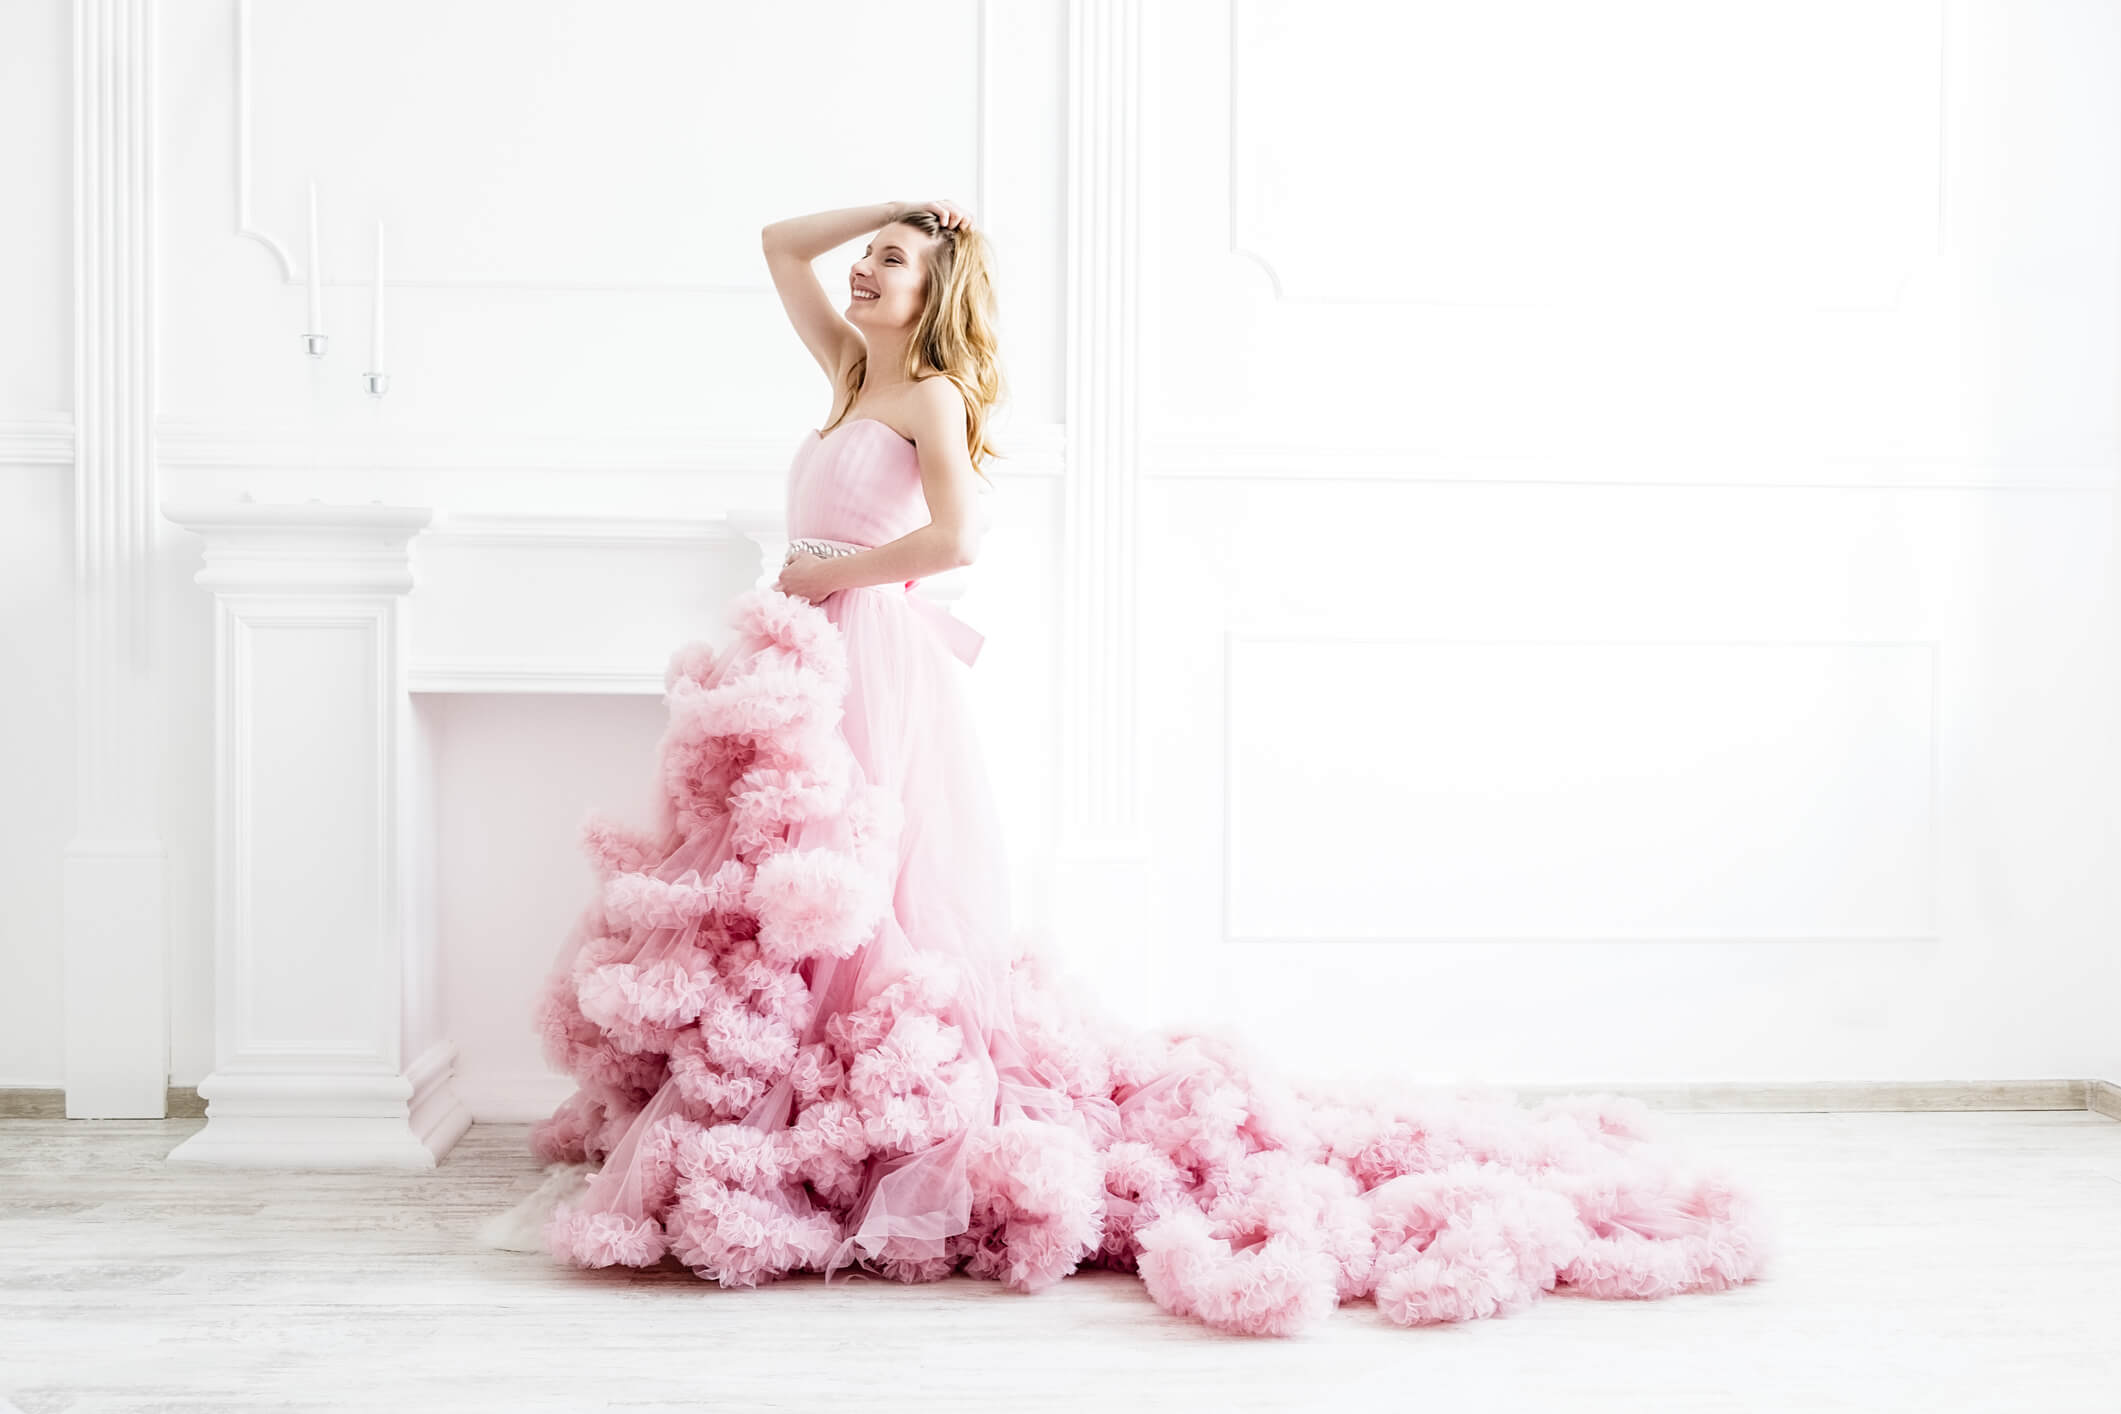 Dreamy woman portrait in a long pale pink ruffled gown in a white room.